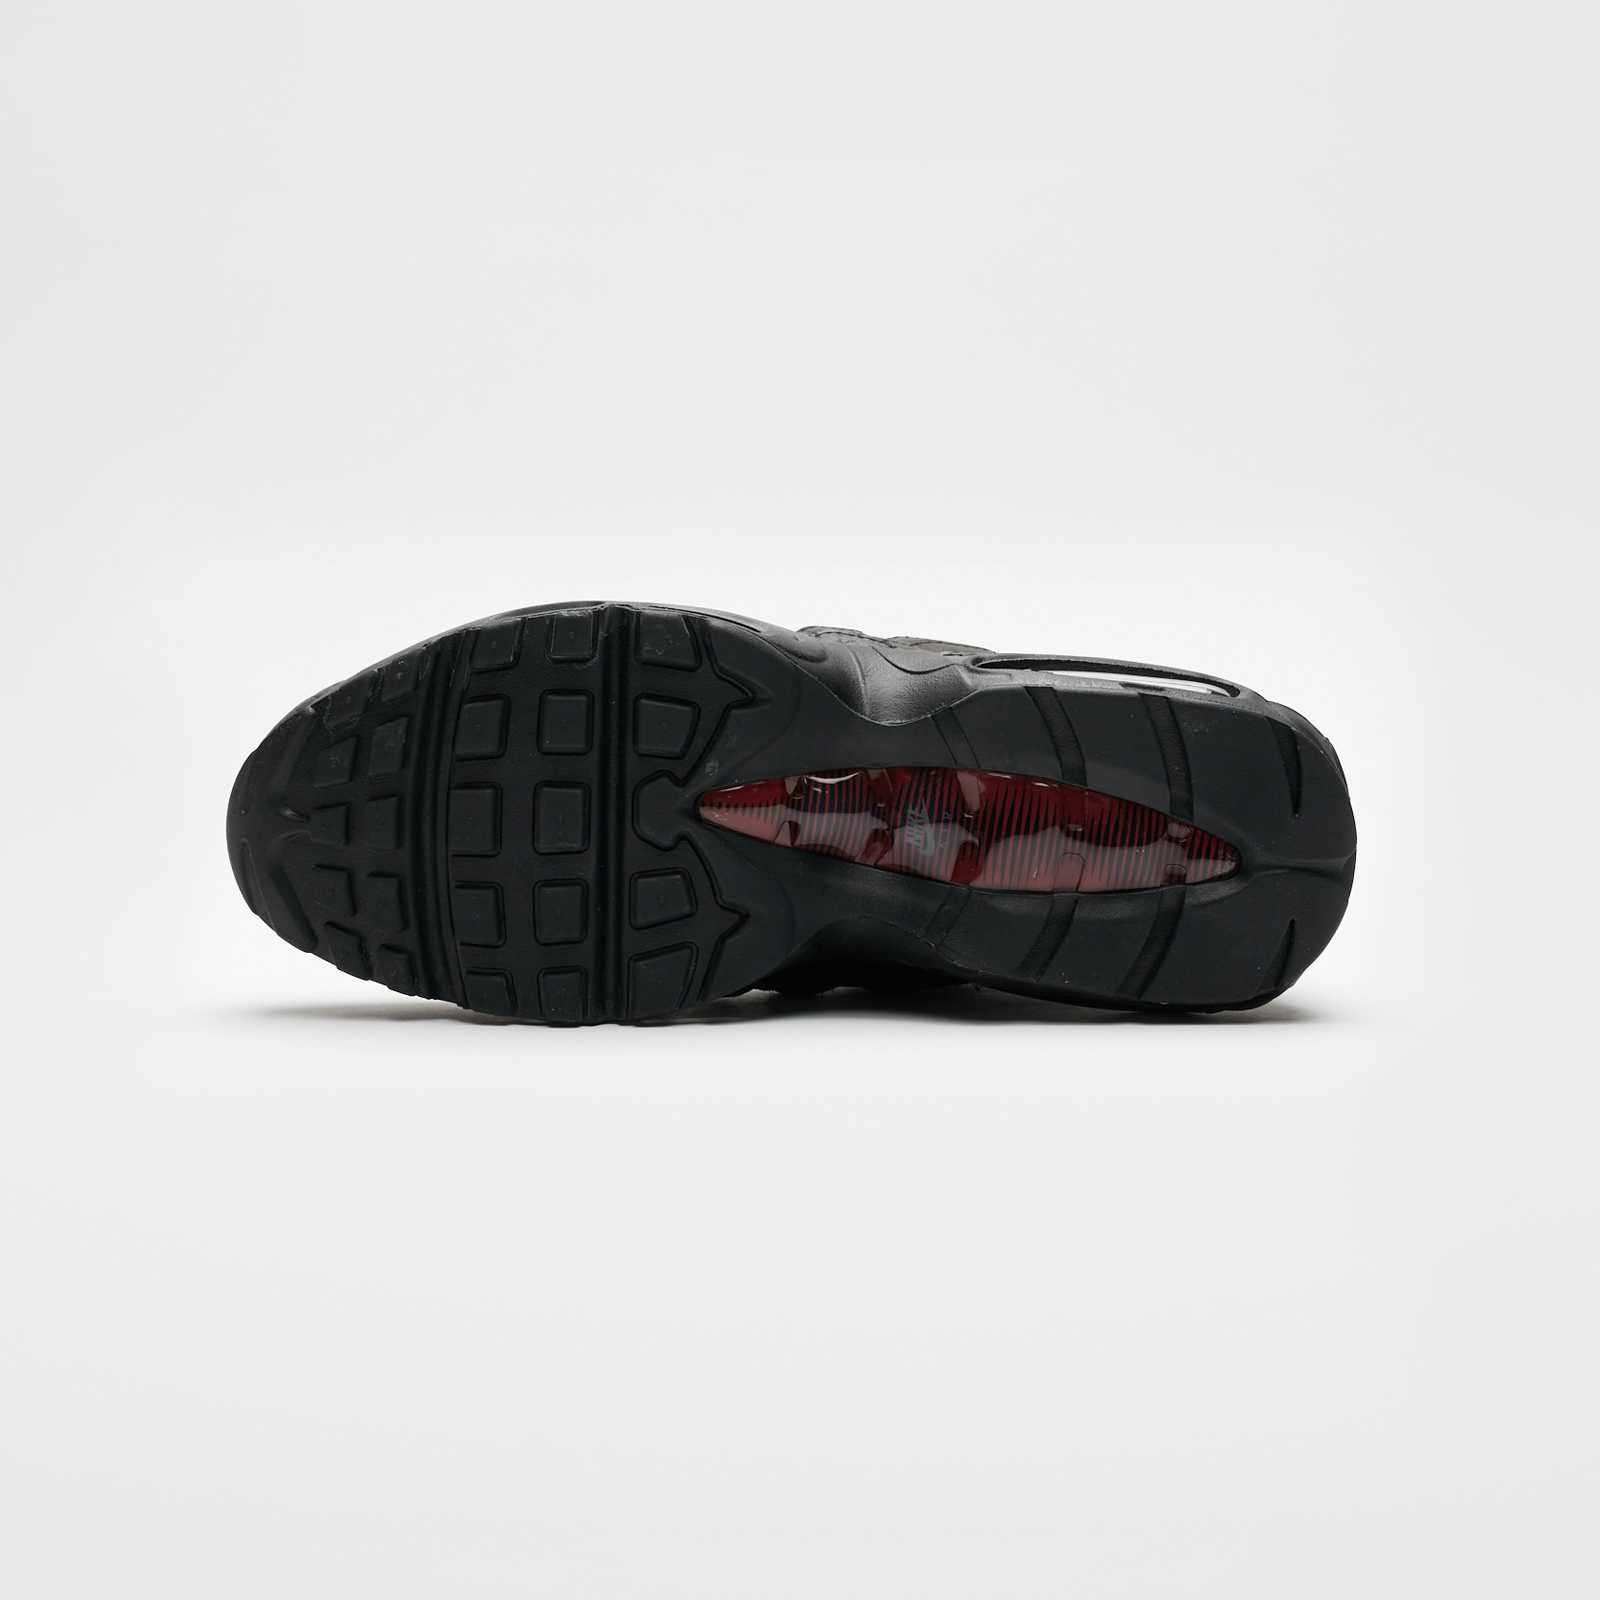 Nike Air Max Plus OG Bq4629 001 Sneakersnstuff I